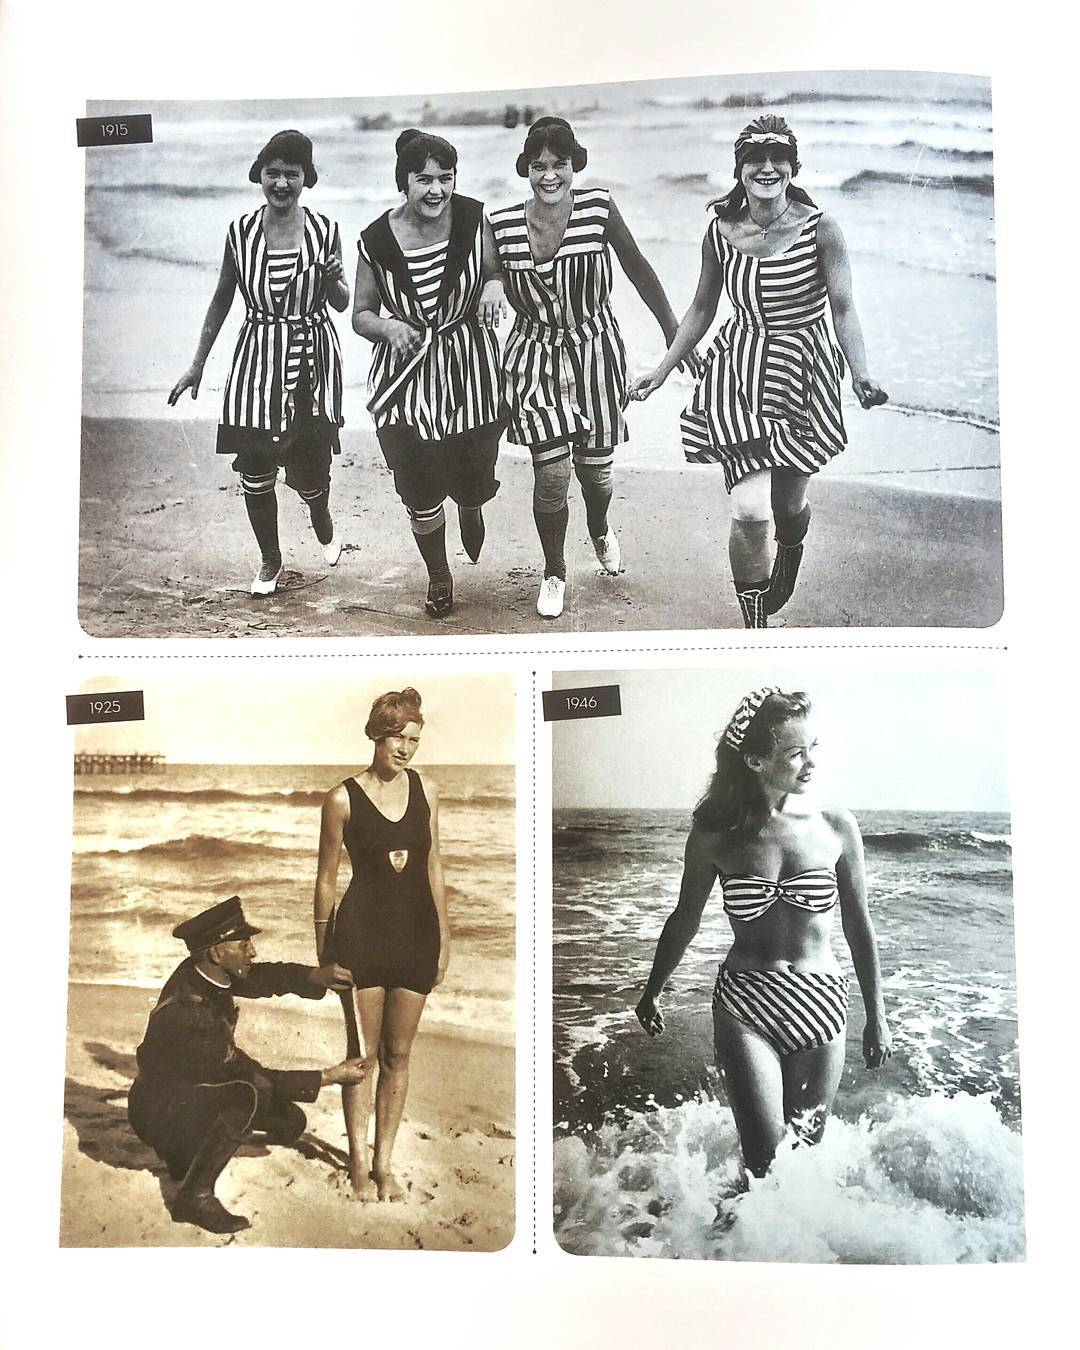 A quick #FBF coupled w/ a #FashionFriday: 20th century evolution of swimwear from 1915 to 1946(the year the bikini dropped). A lot can change in 30 years...